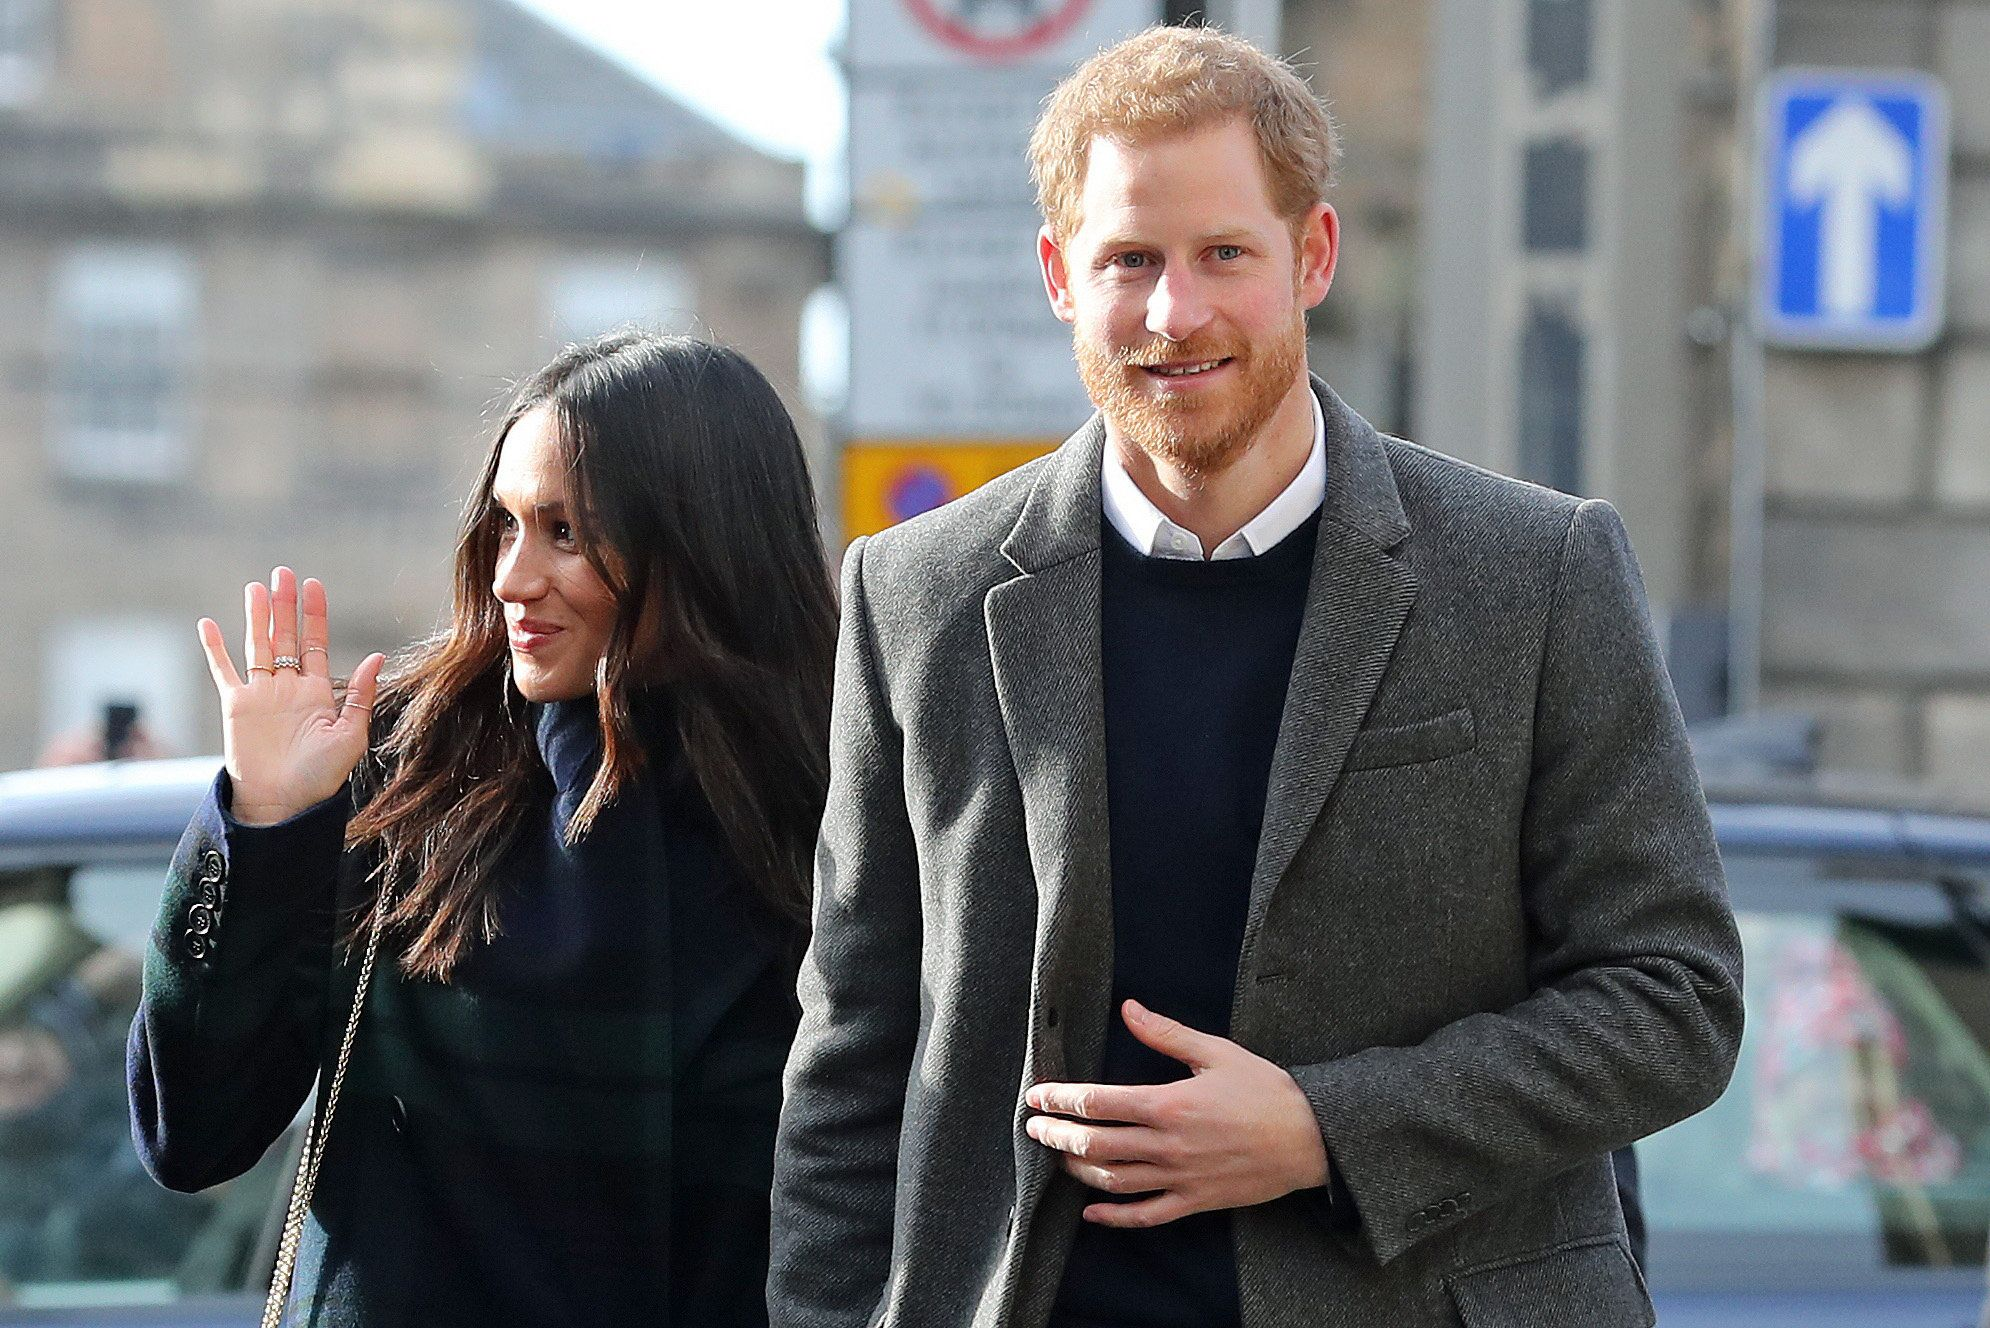 A letter containing a suspicious white substance was sent to Meghan Markle and Prince